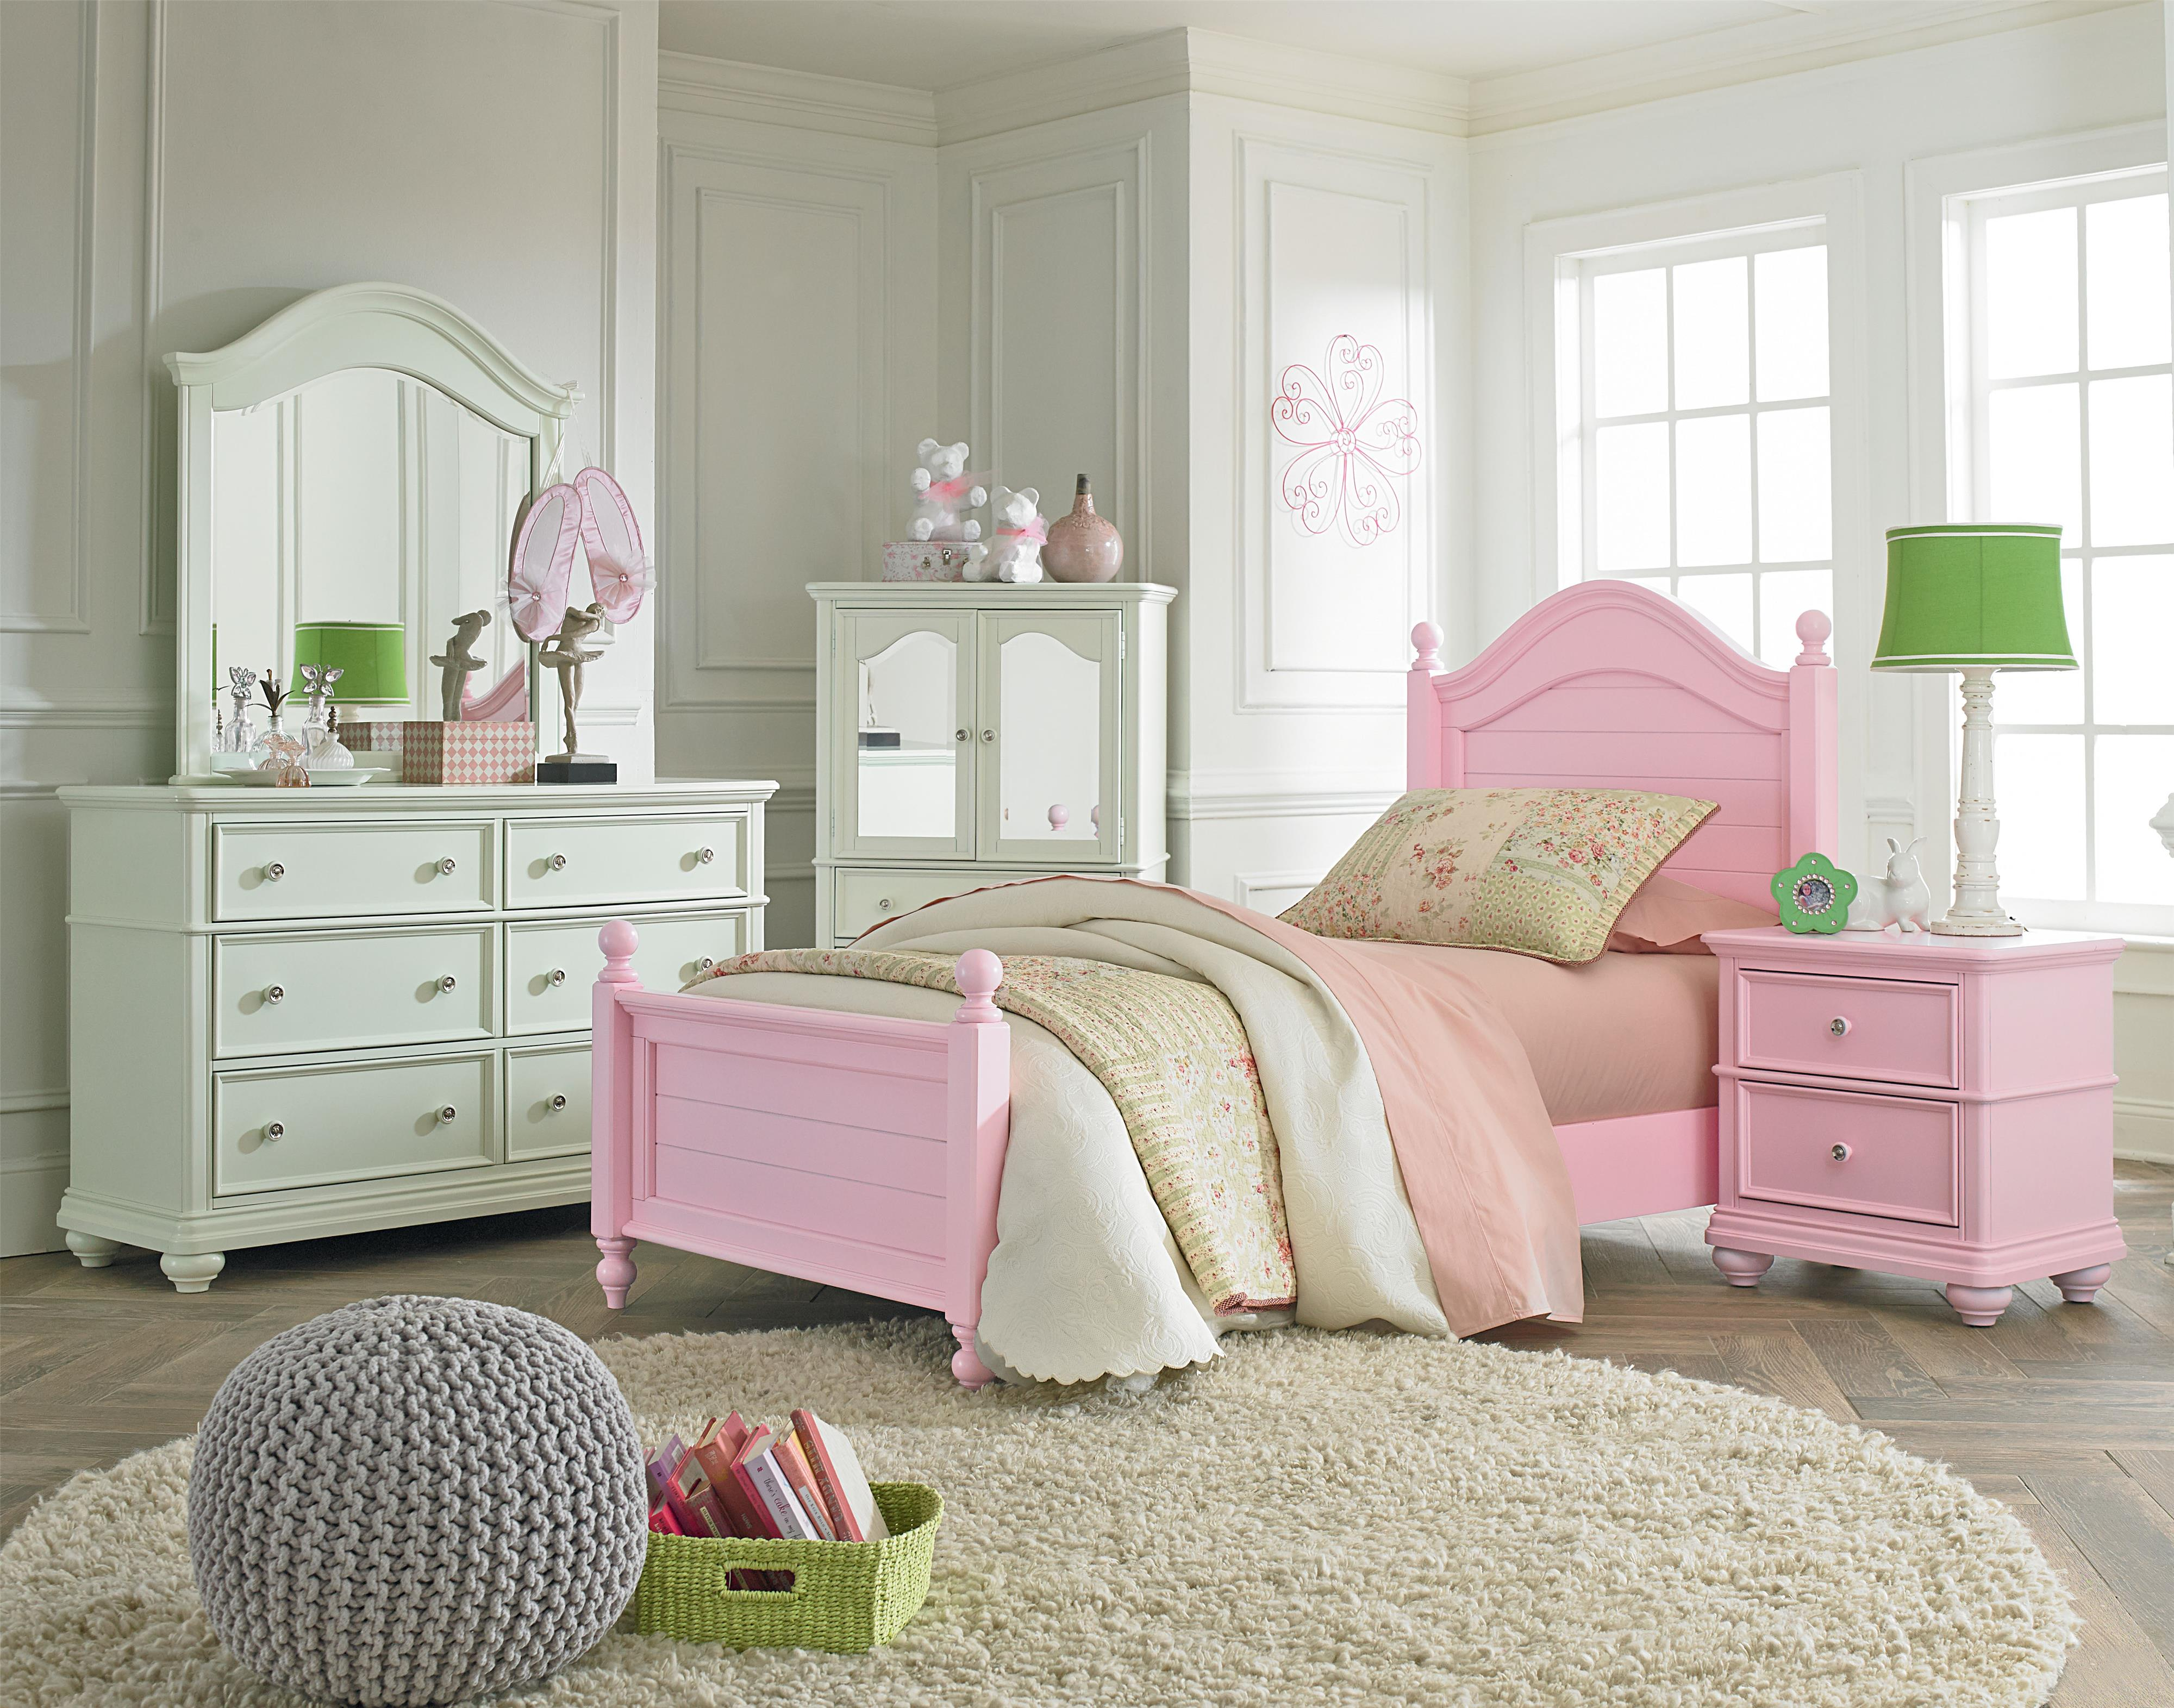 Standard Furniture Camellia Bubble Gum Full Bedroom Group - Item Number: 95210 F Bedroom Group 1